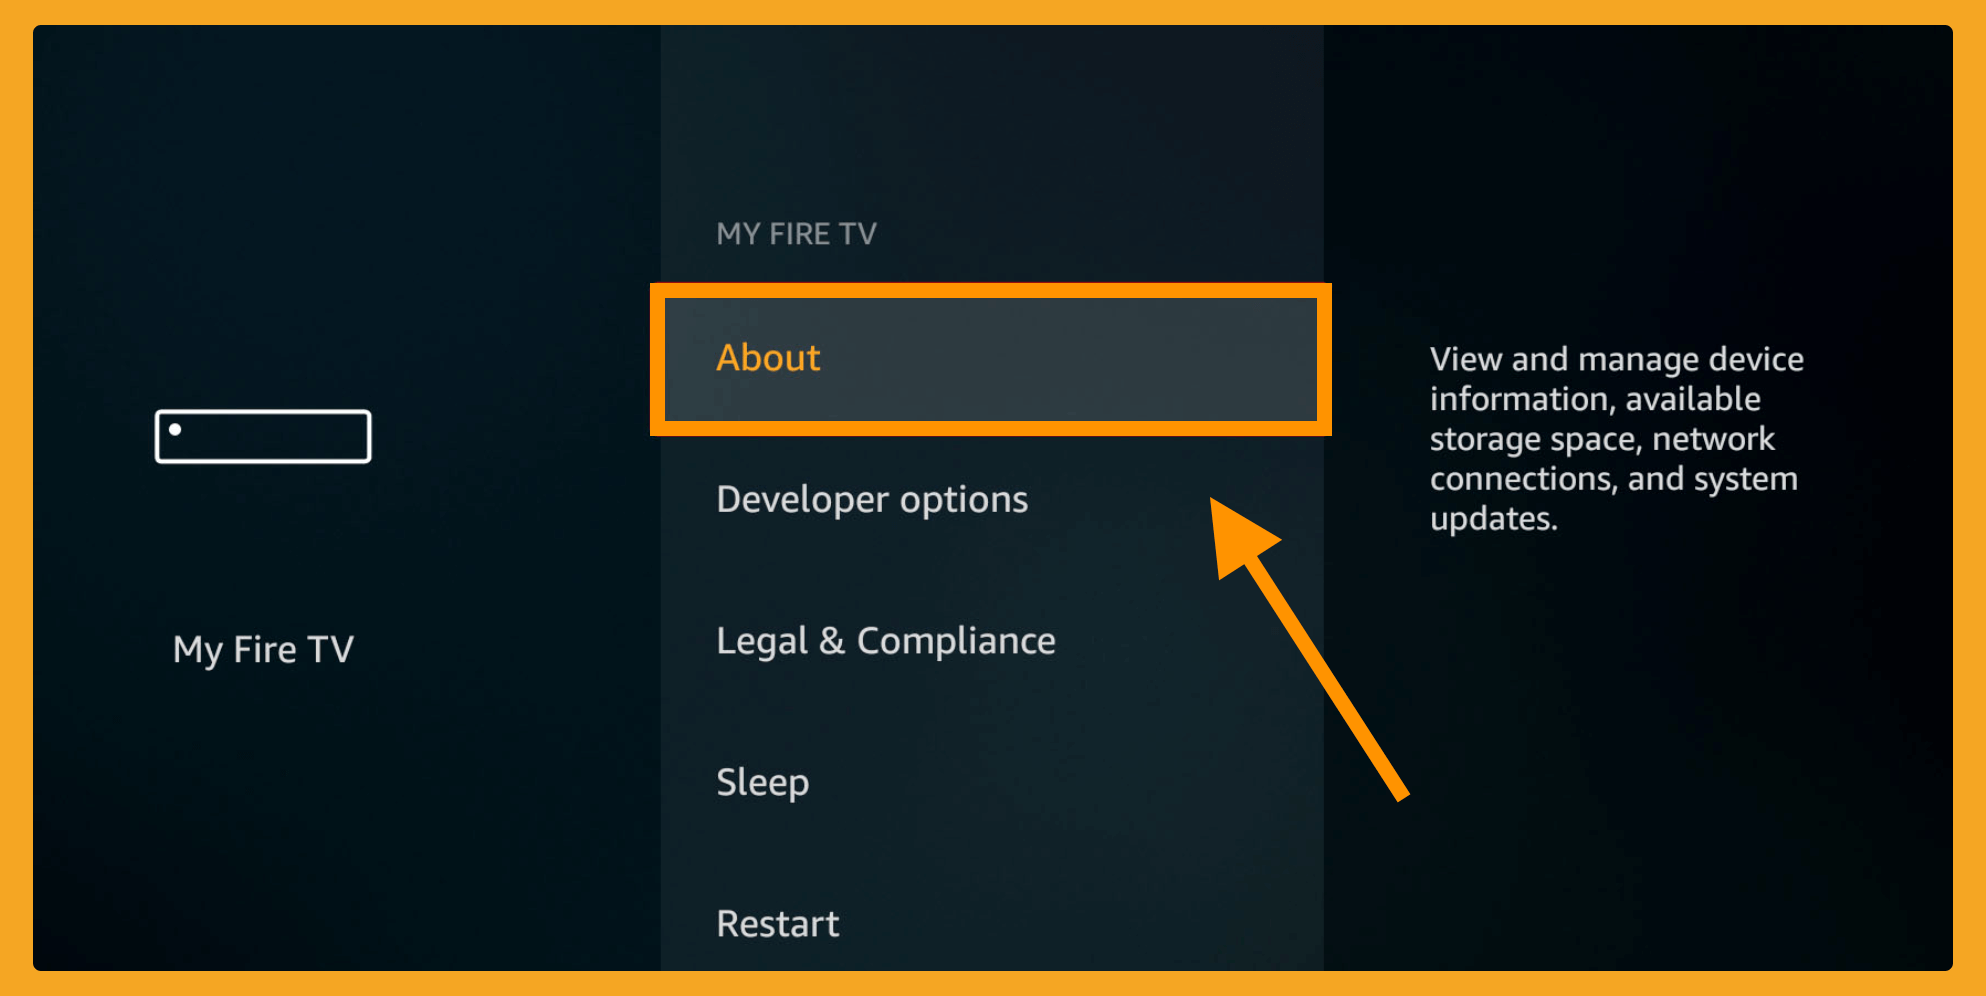 go-to-about-page-on-firestick-to-update